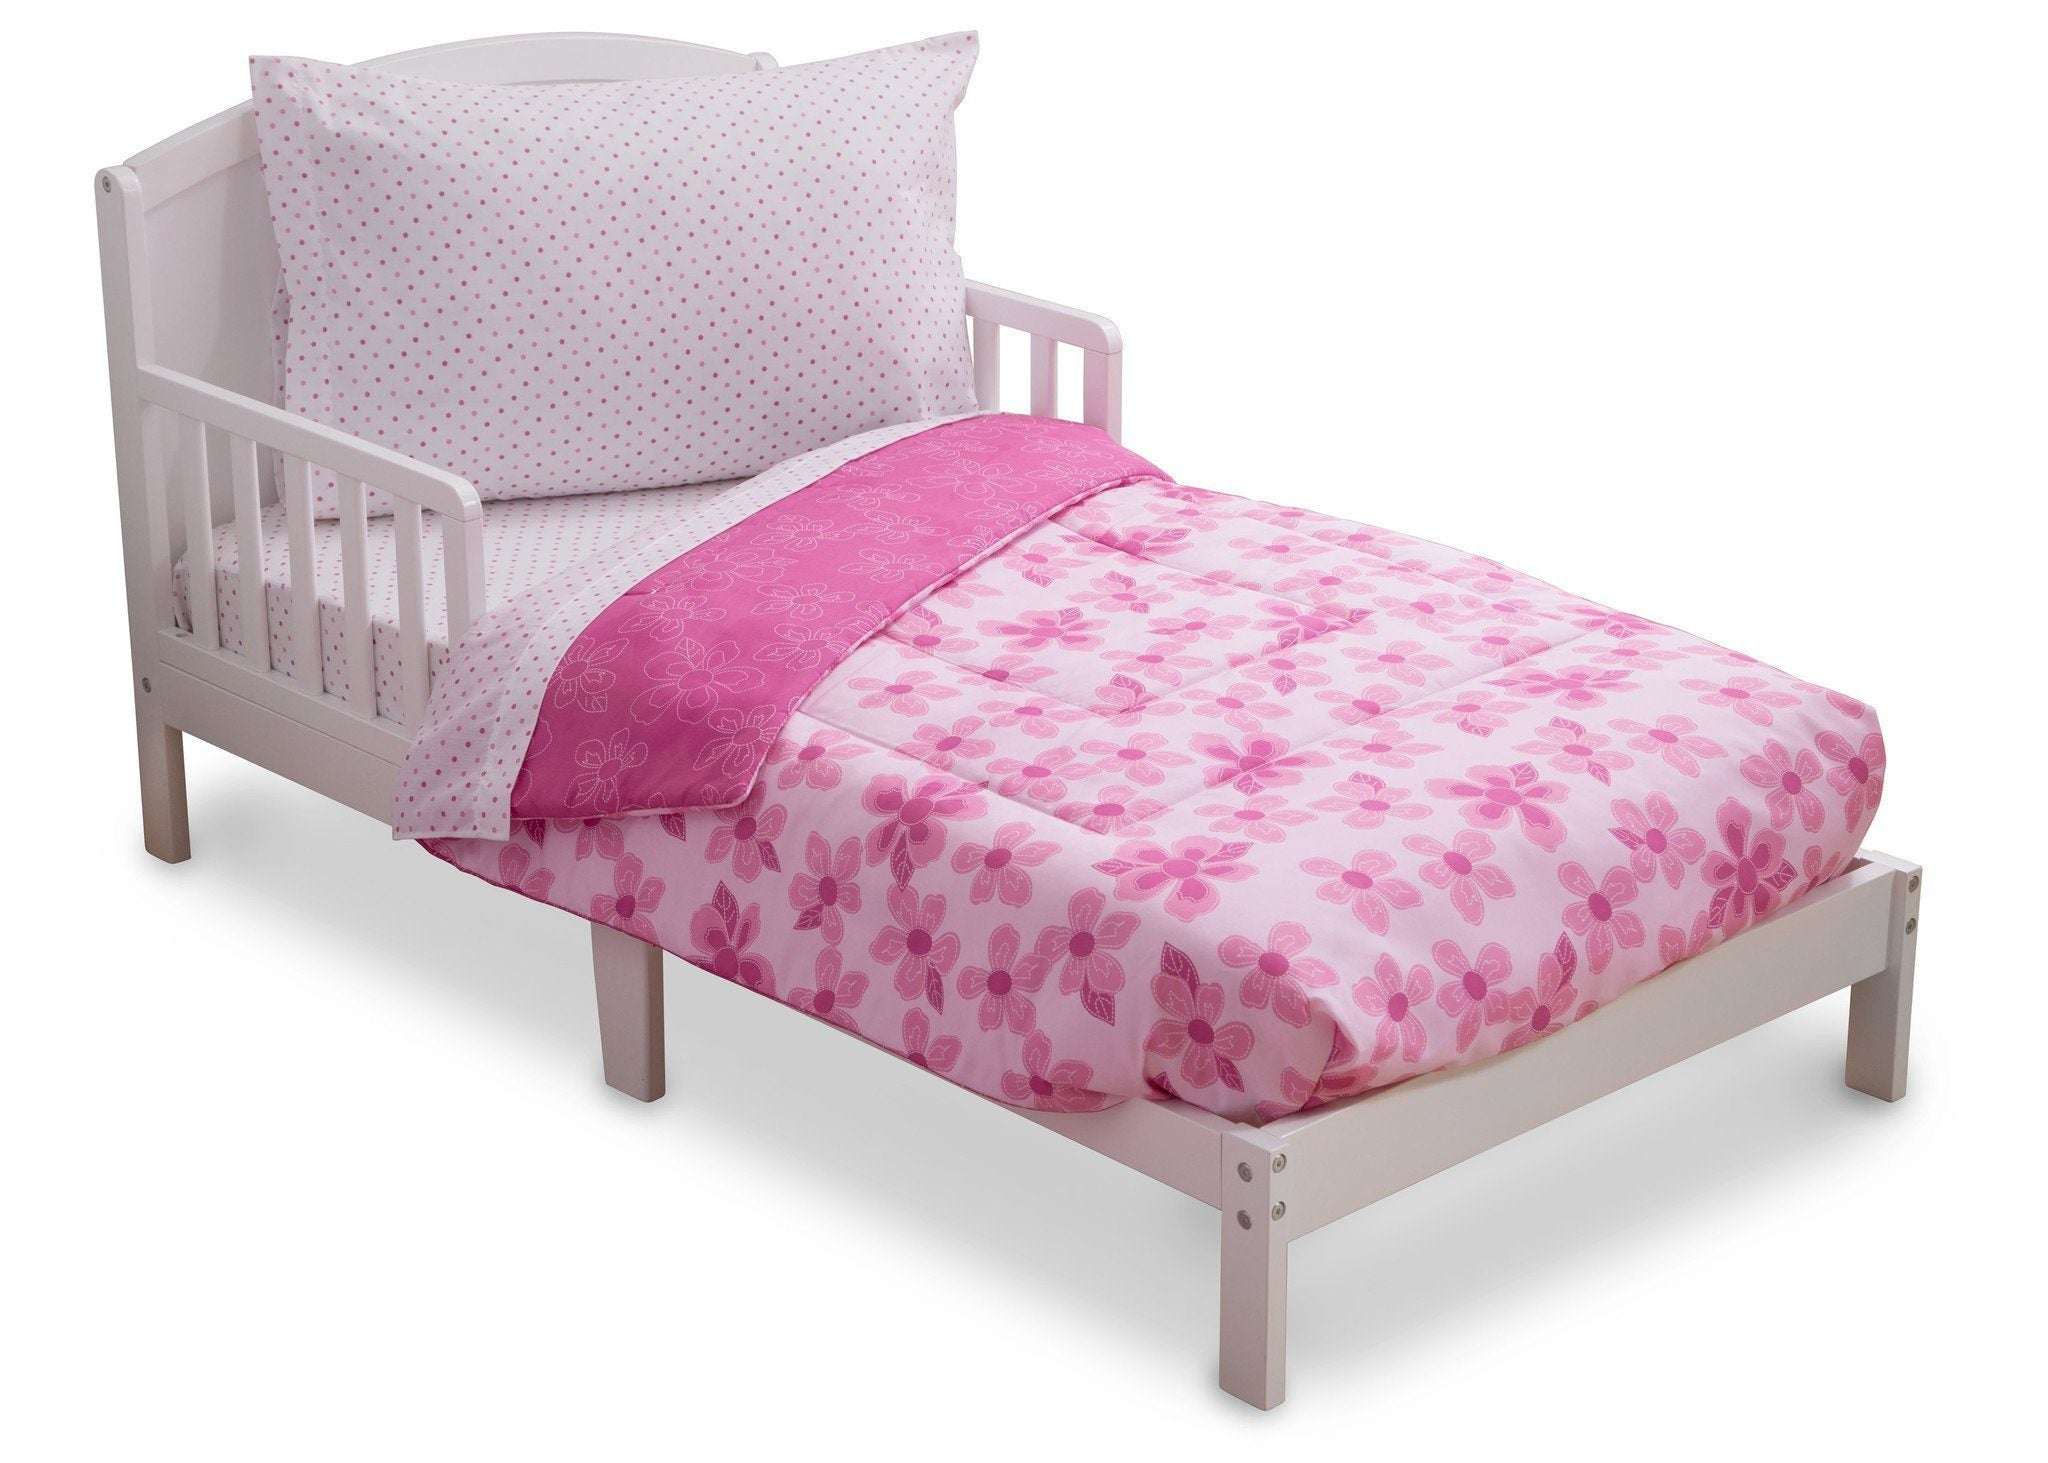 girl 4 piece toddler bedding set floral and polka dot 2000 a3a - Toddler Bed Sets